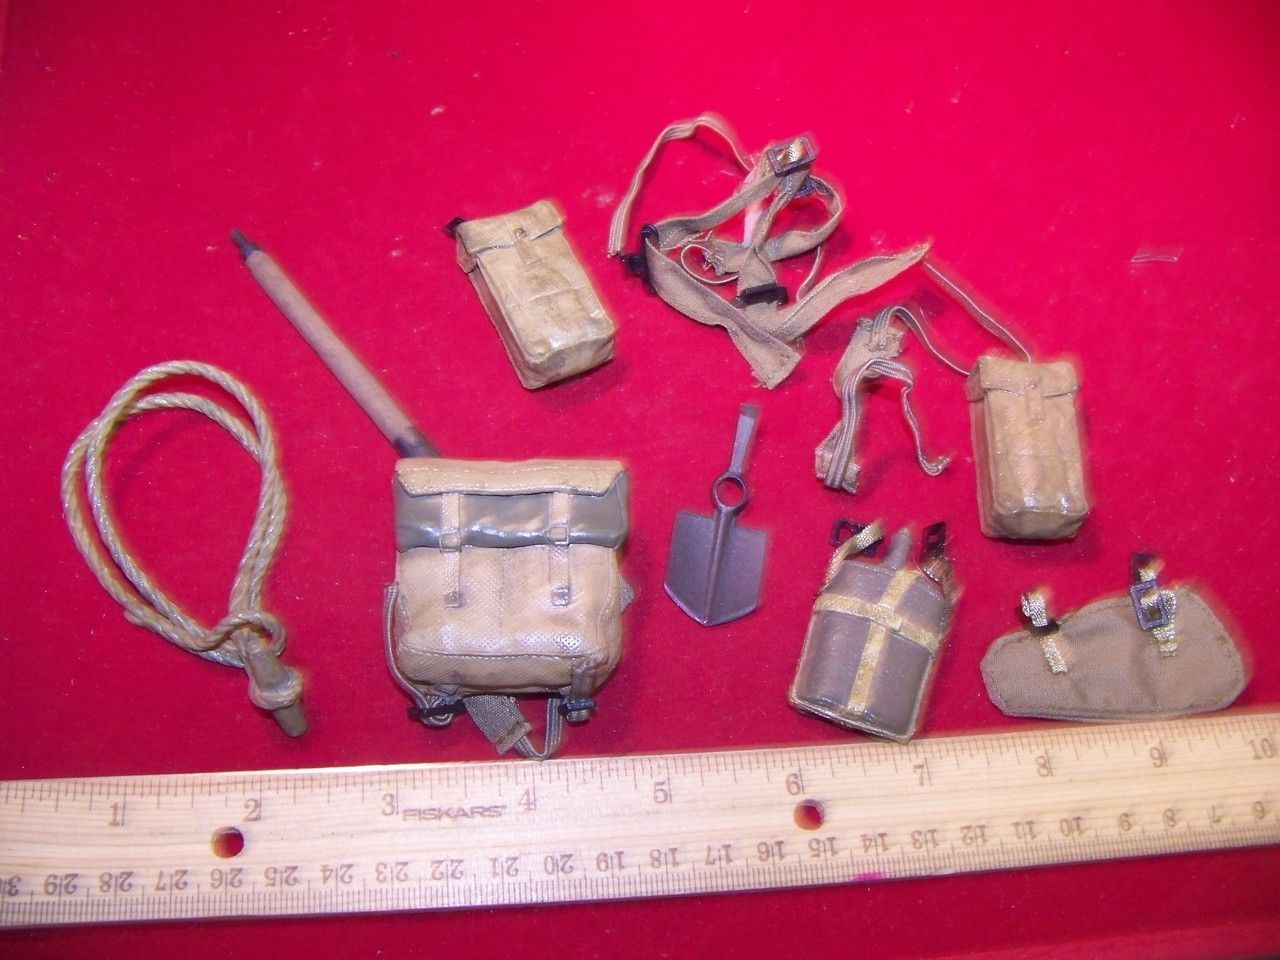 1/6 Scale WWII British Belt, Backpack, Harness, & more